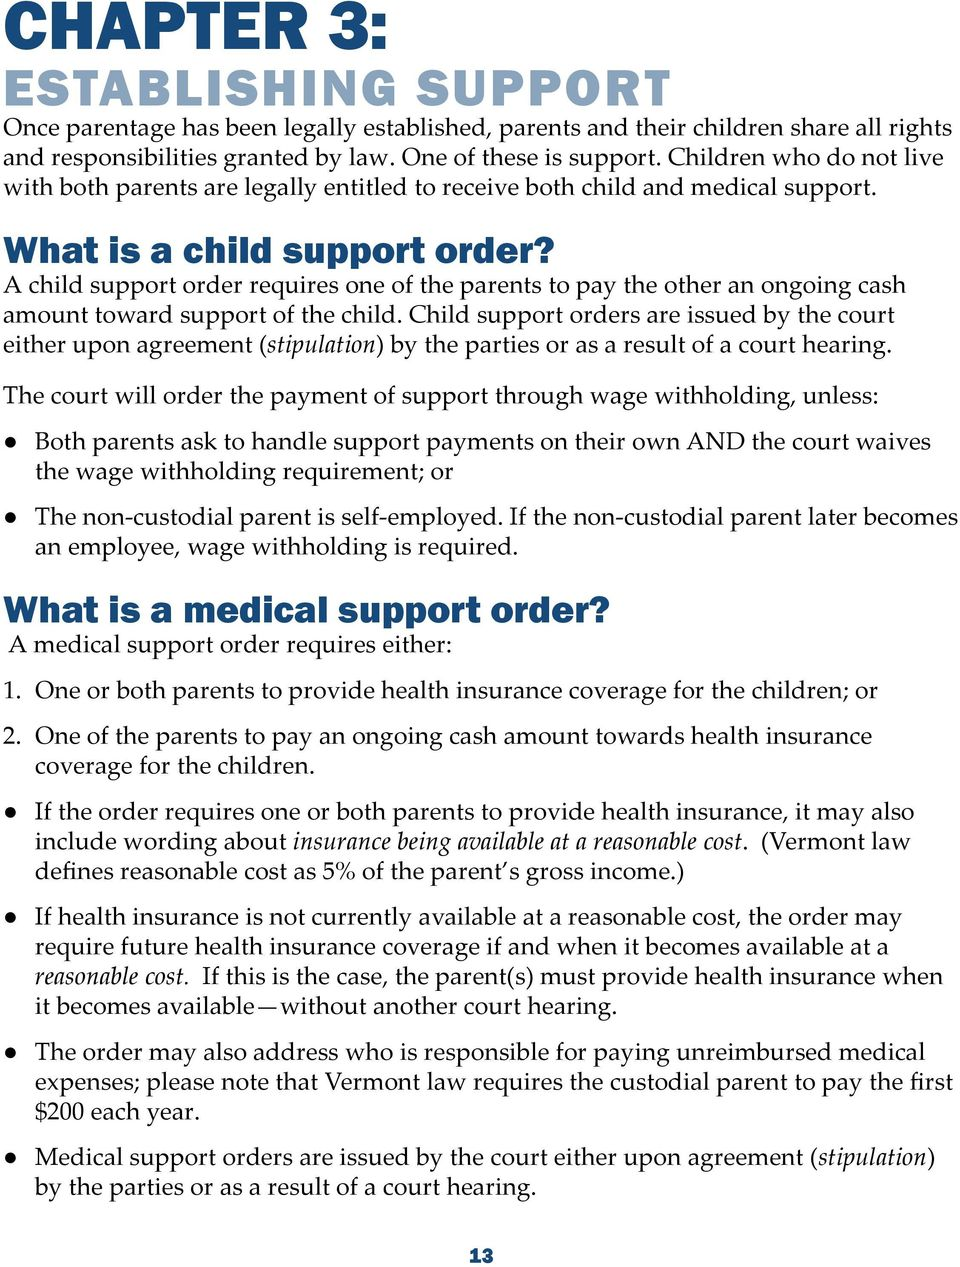 A child support order requires one of the parents to pay the other an ongoing cash amount toward support of the child.